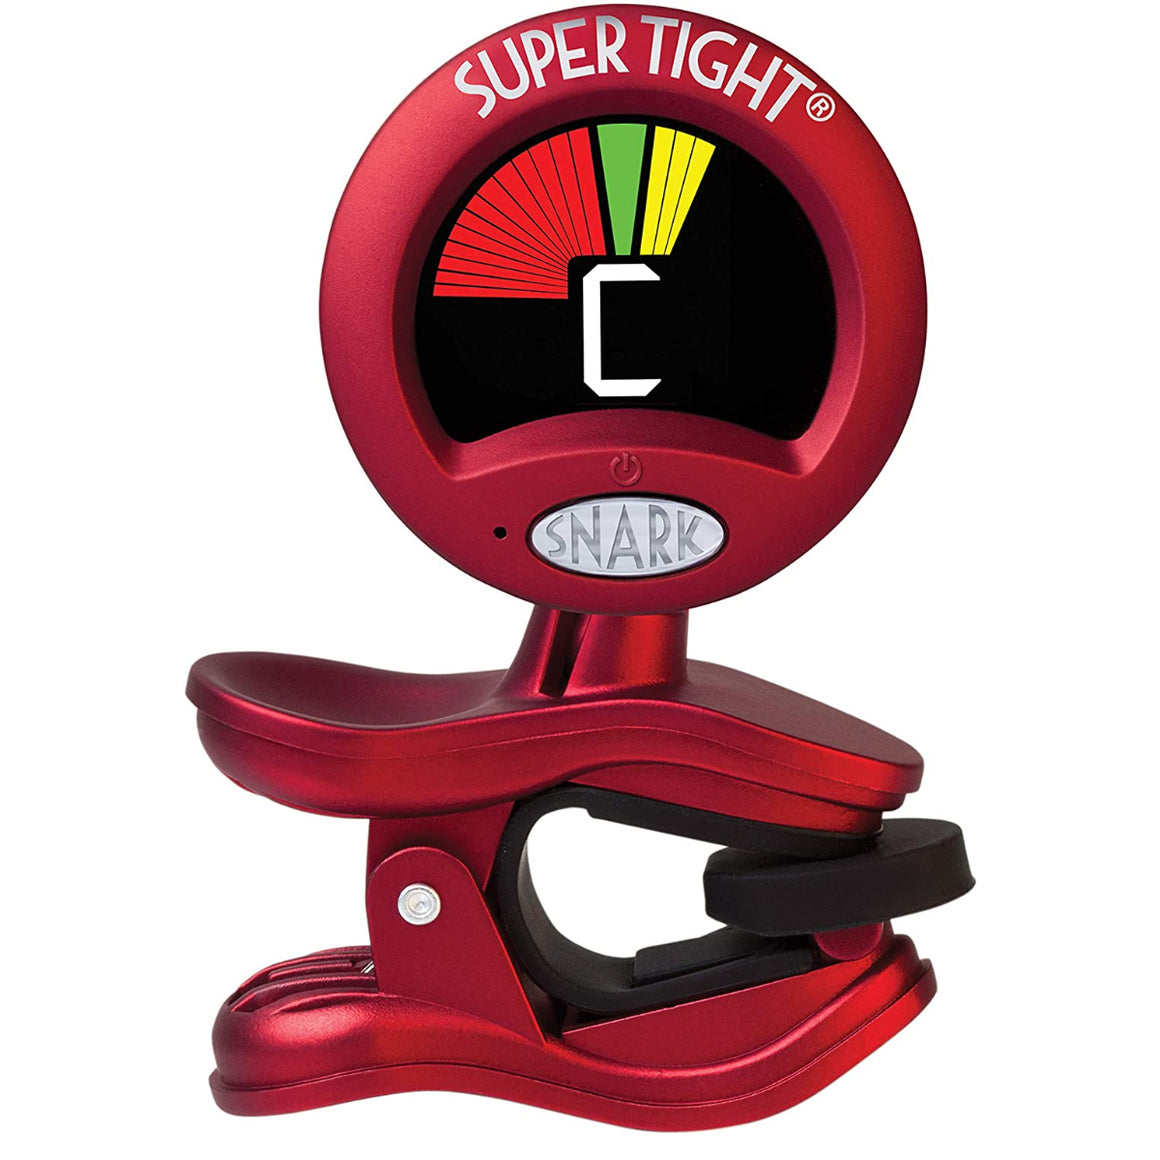 Snark ST-2 Clip-On Chromatic Tuner with Metronome - Red